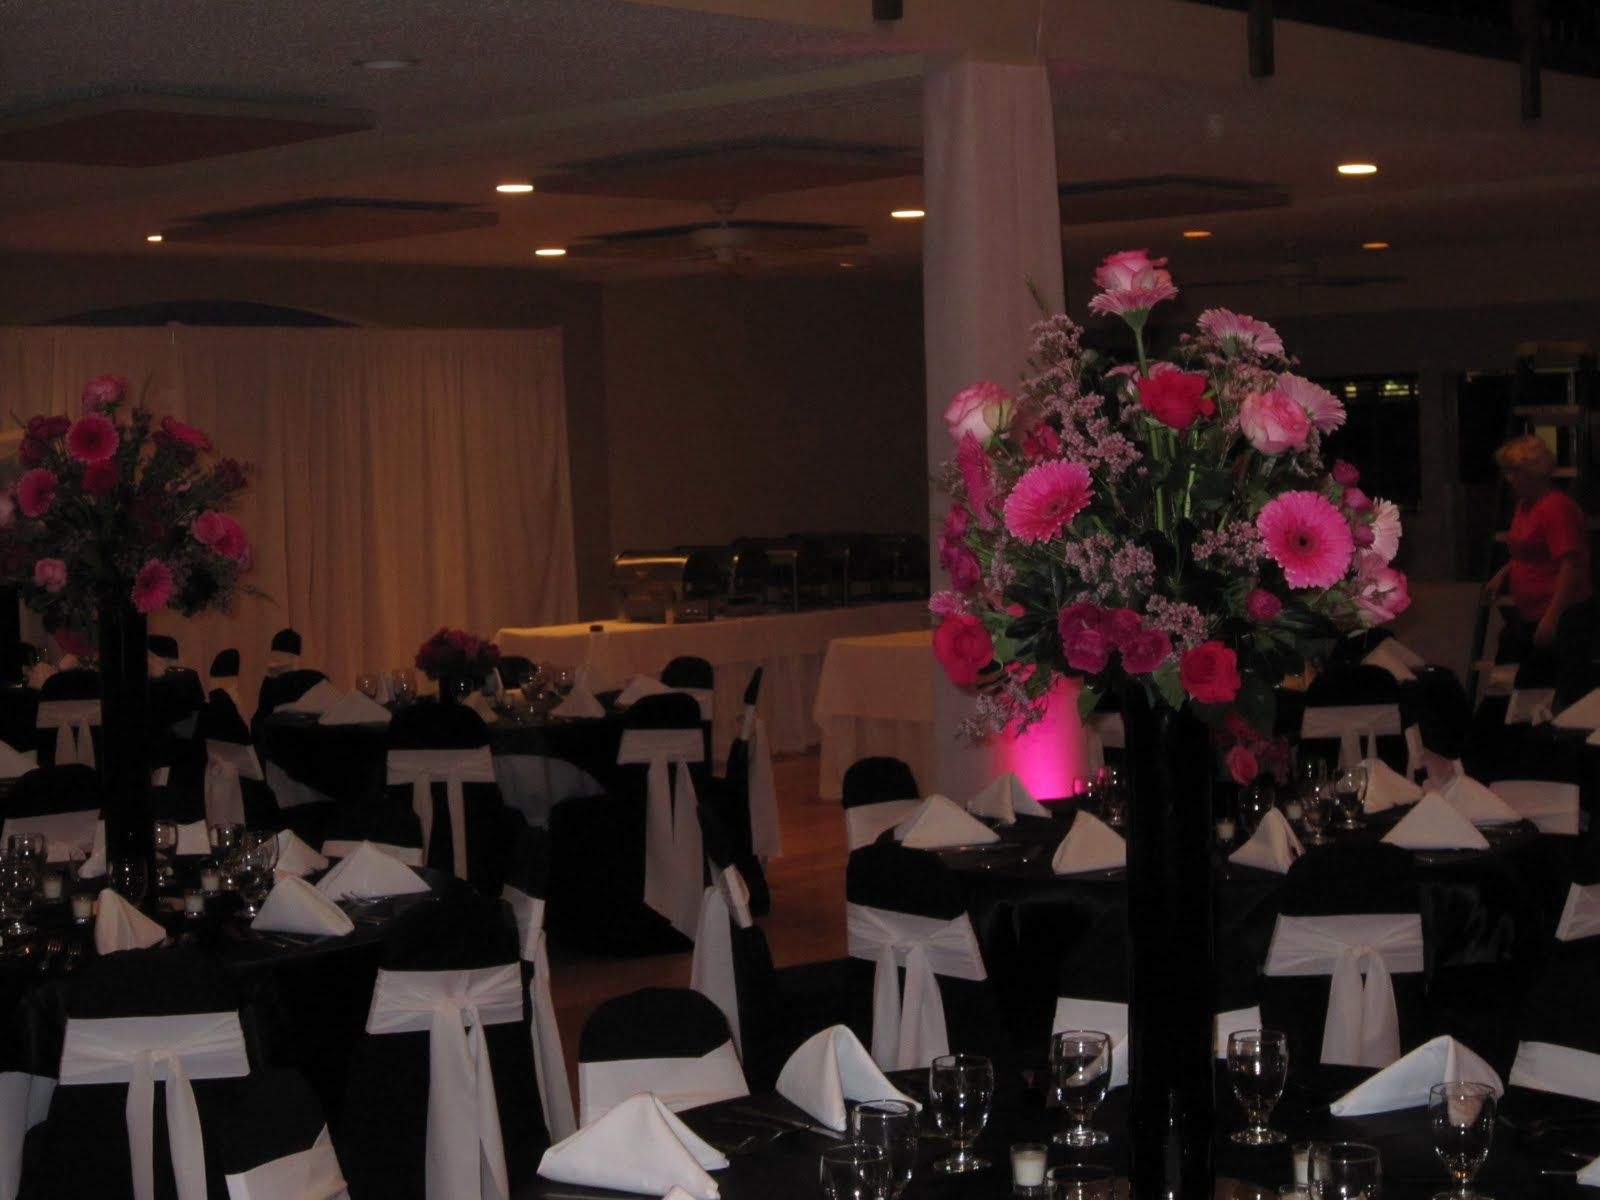 Decorations red black and white - Black White And Red Wedding Recpetion Pics Red Black And White Wedding Decoration